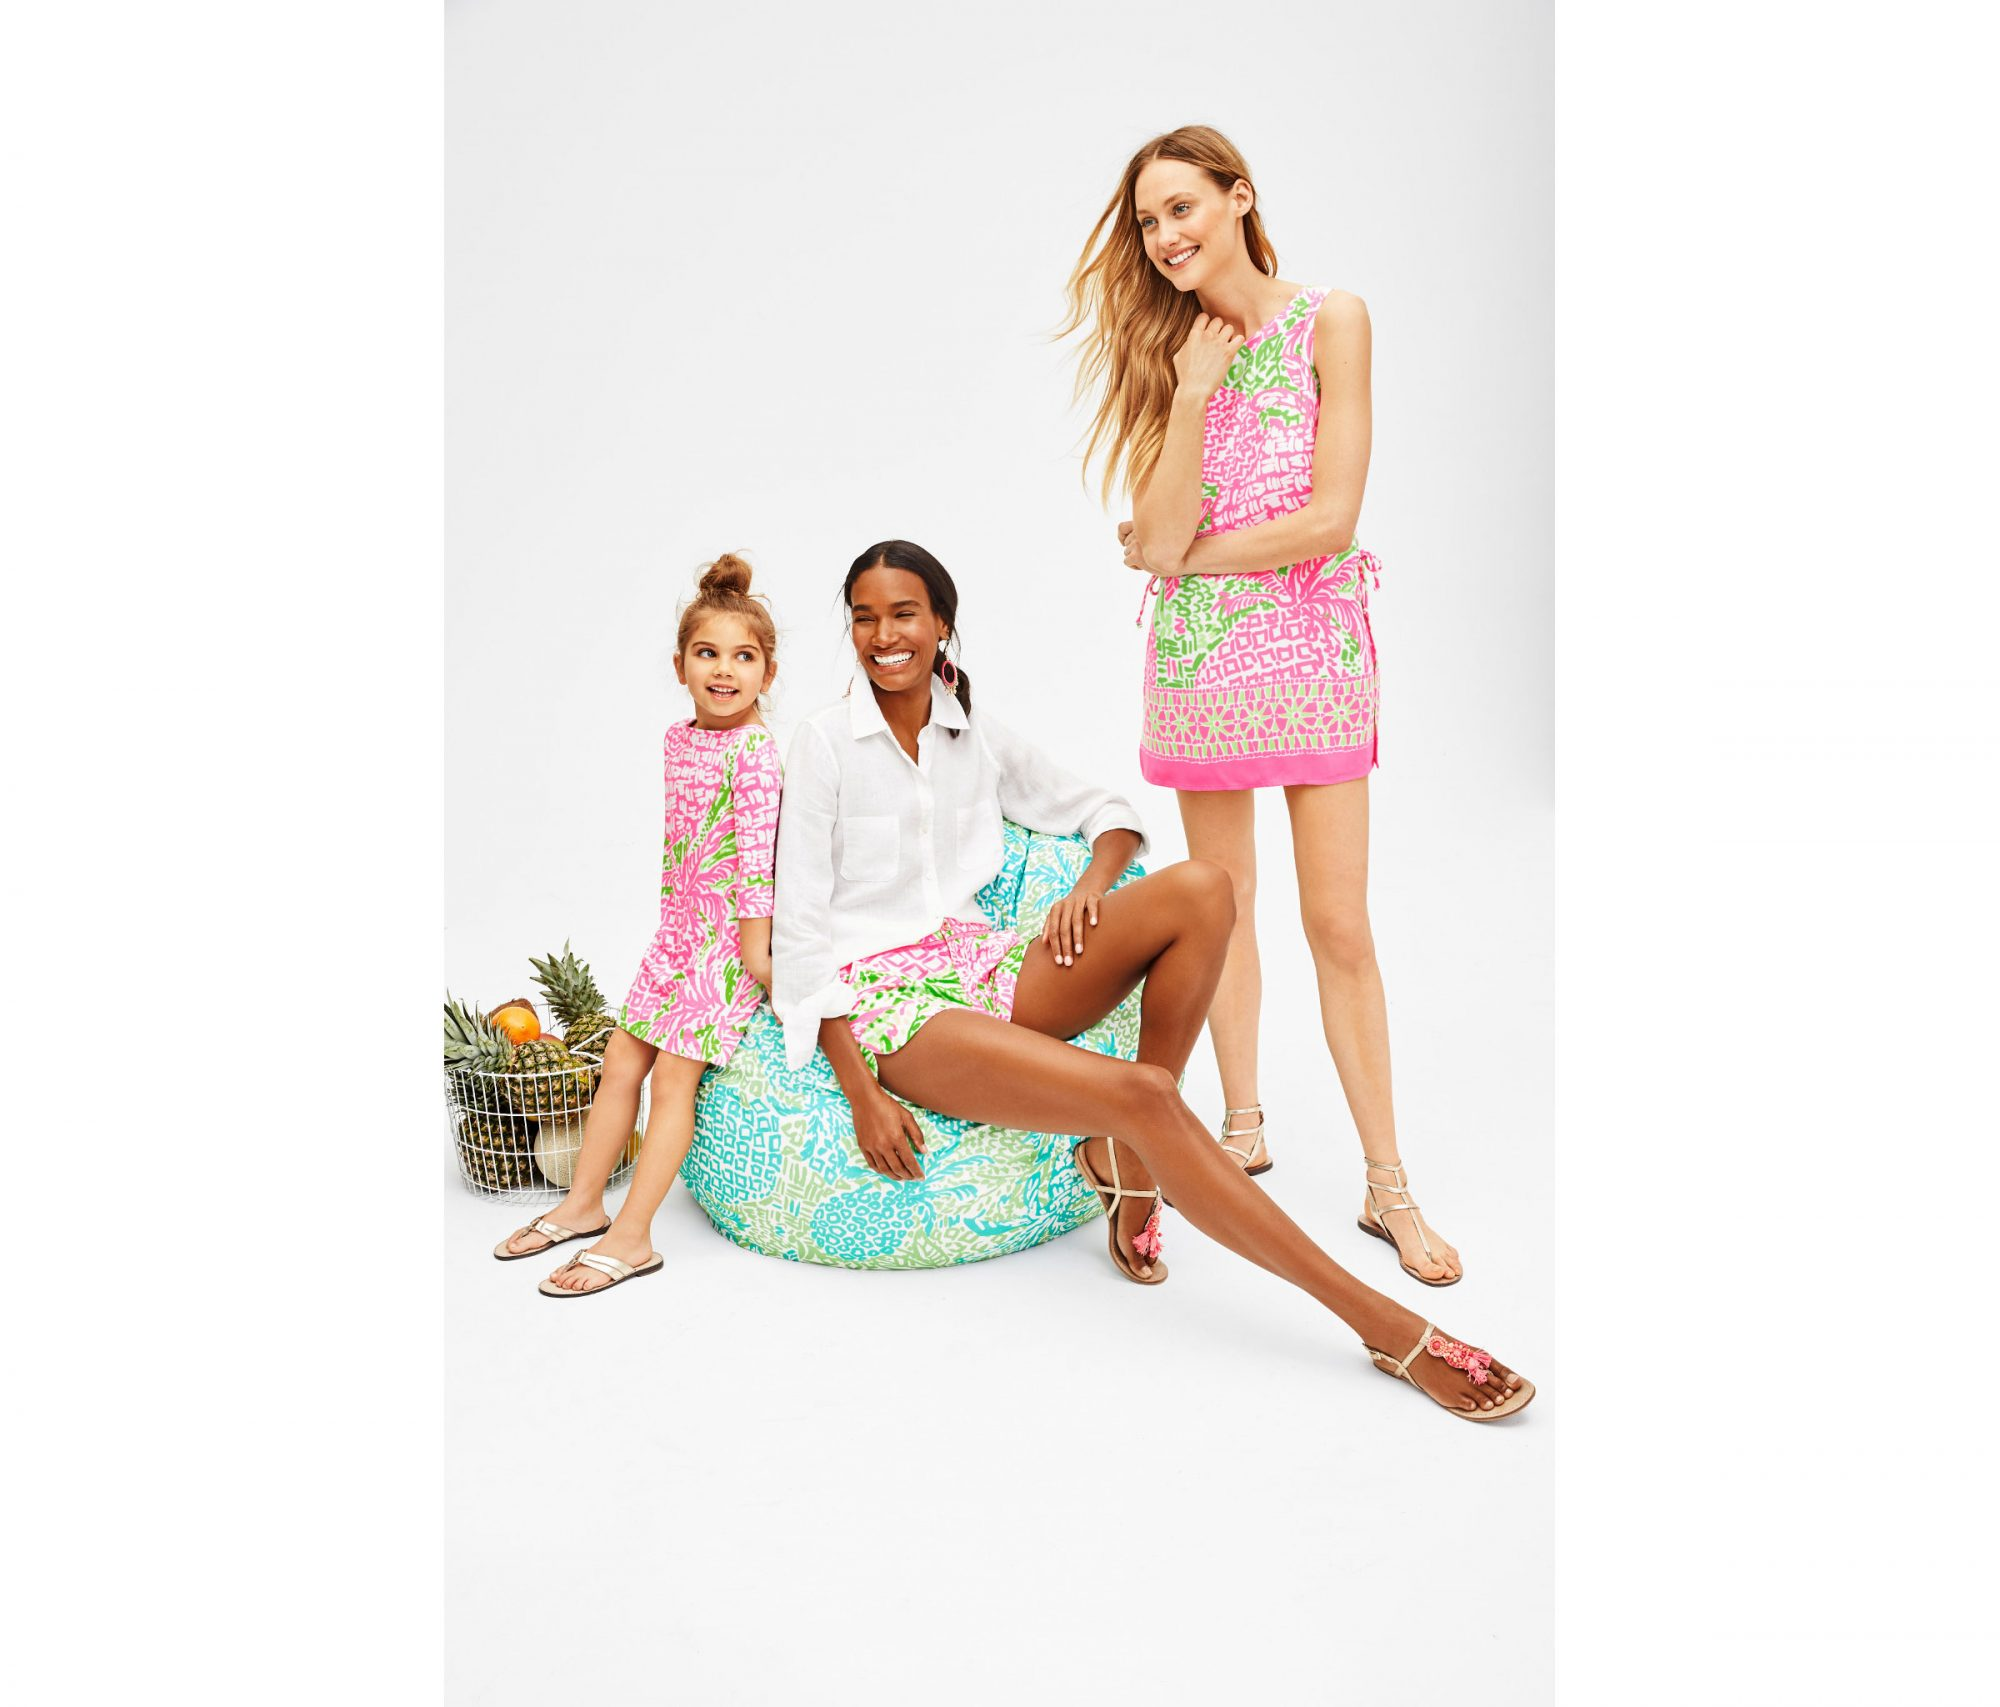 Lilly Pulitzer Pottery Barn Collaboration